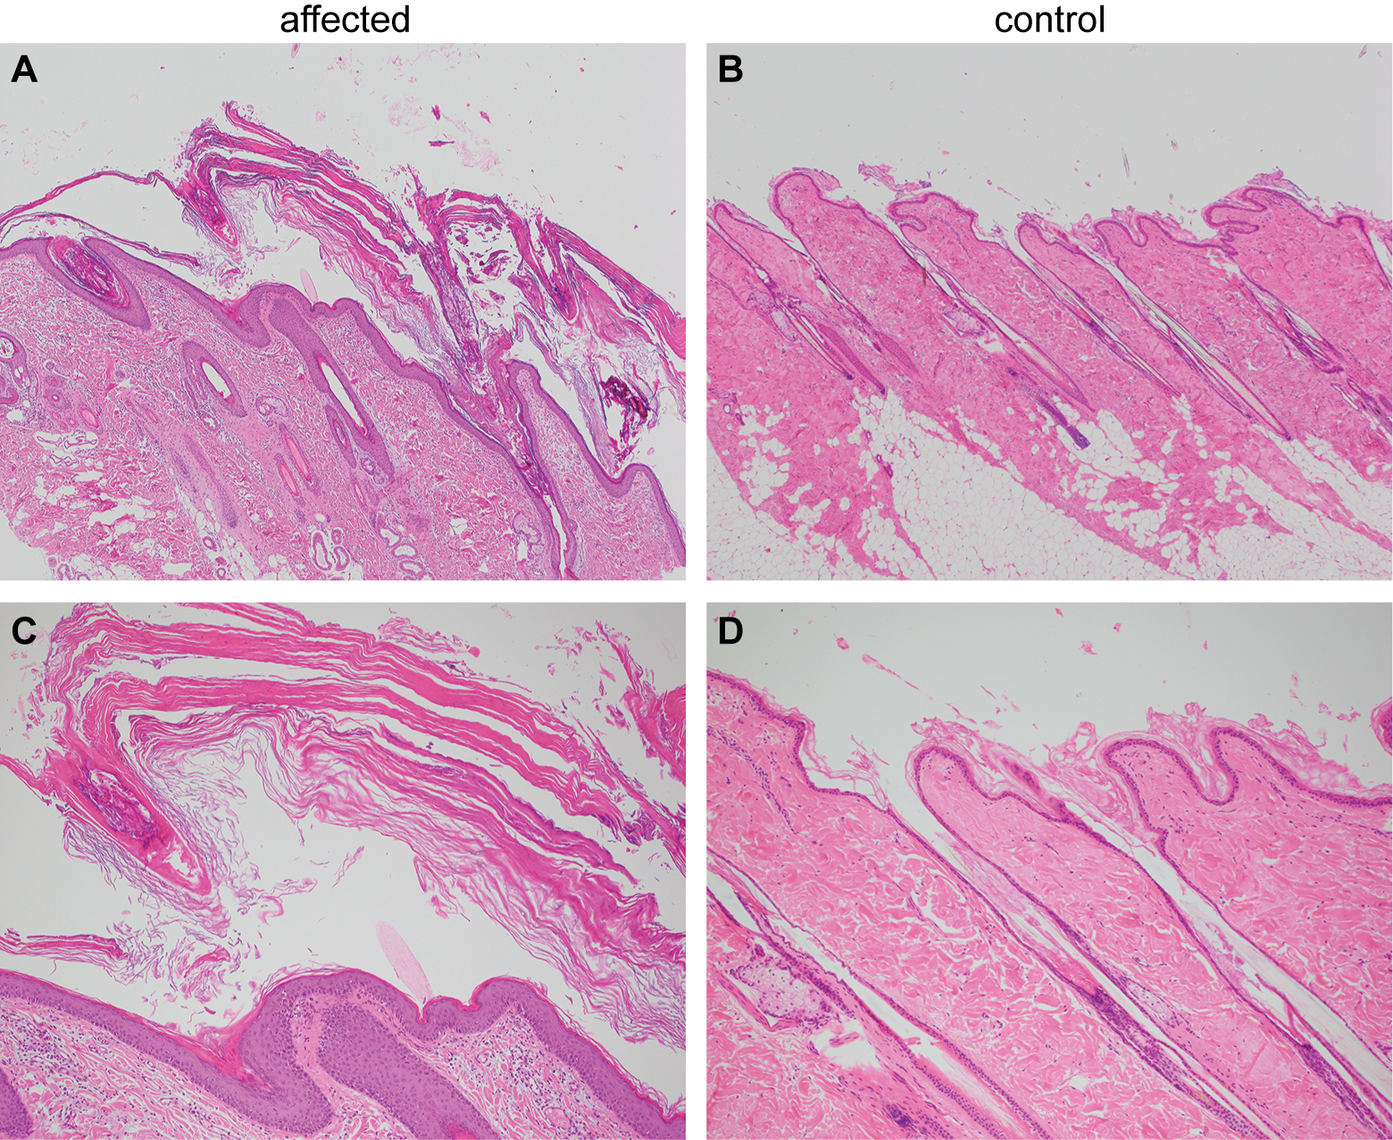 Histopathological findings in skin of the ichthyotic dog and a control dog.